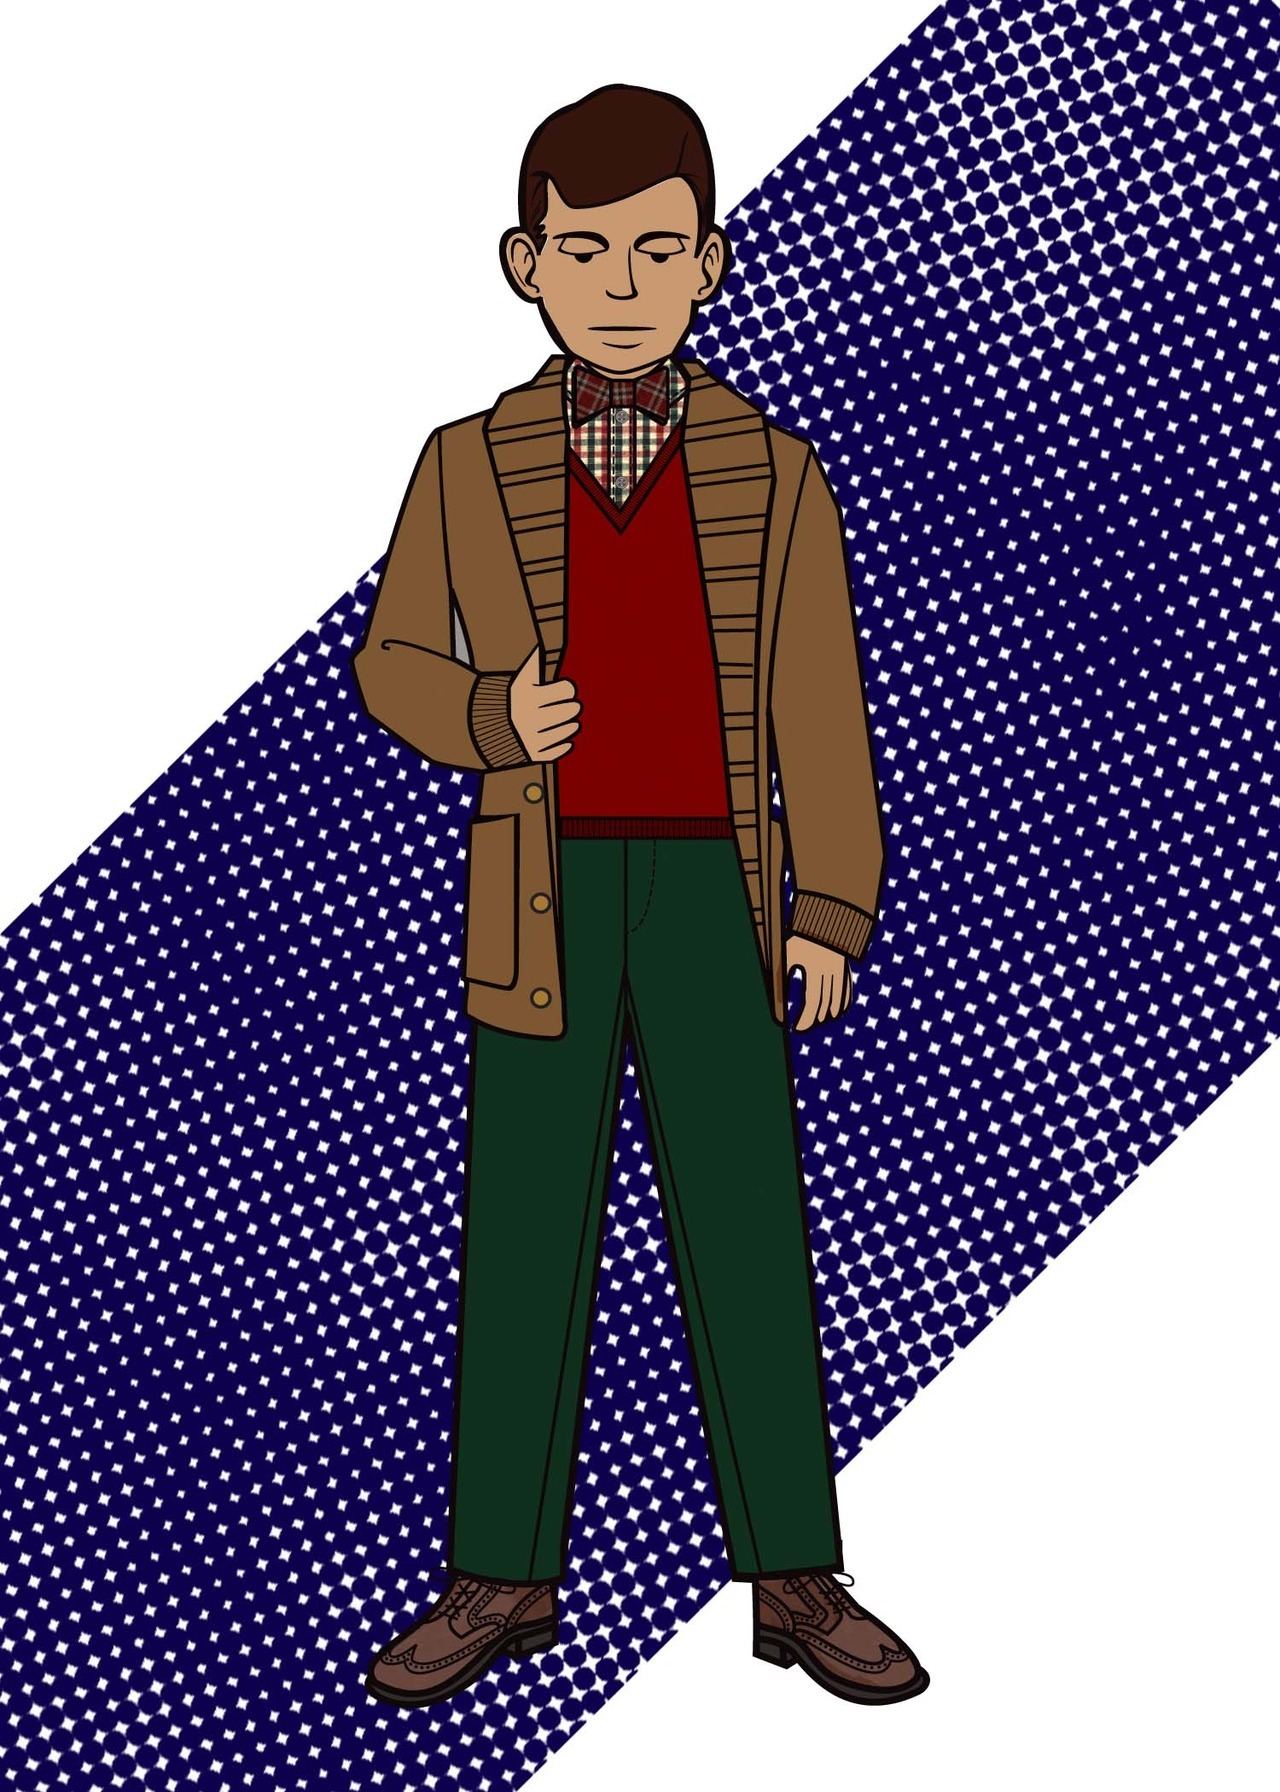 RFND Style Sheet 5: Shawl Neck Cardigan Style During the fall season, nothing beats a nice warm cup of apple cider and a shawl collar sweater. Shawls come in many different styles, colors, length and designs to suit your personal preference…READ MORE!